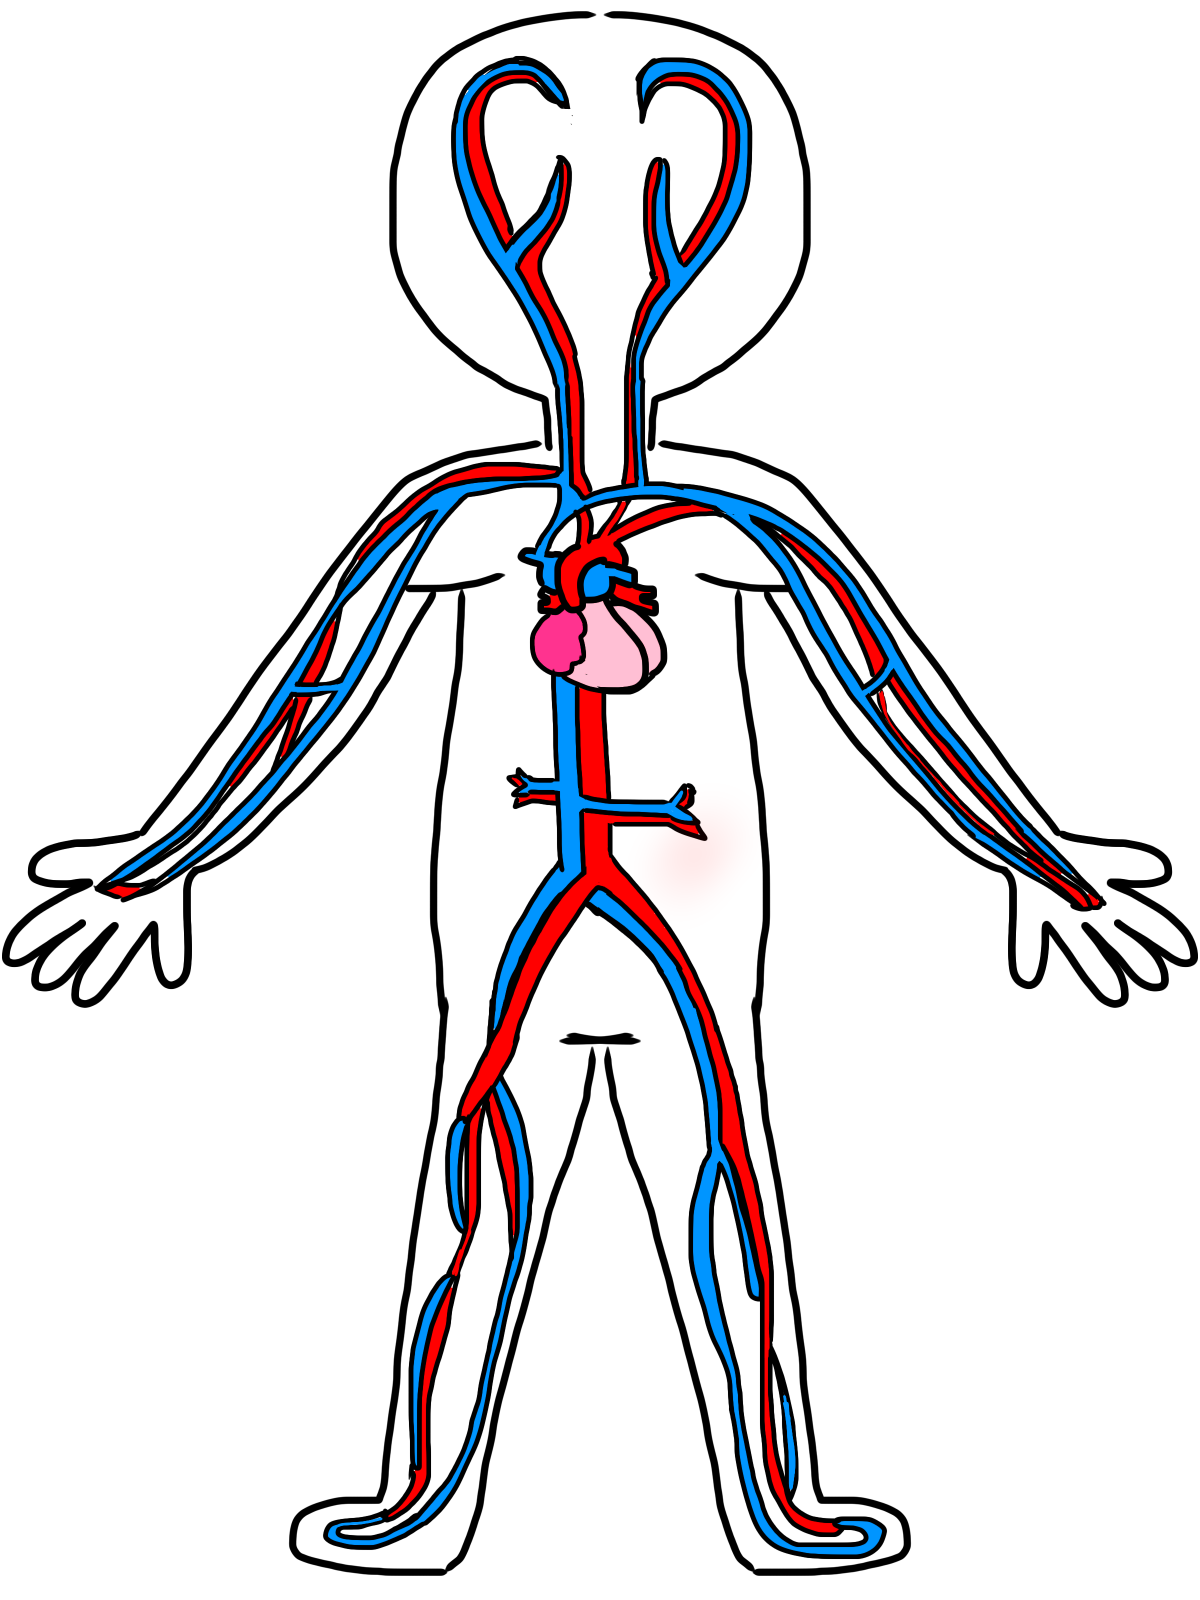 Cardiovascular System Drawing